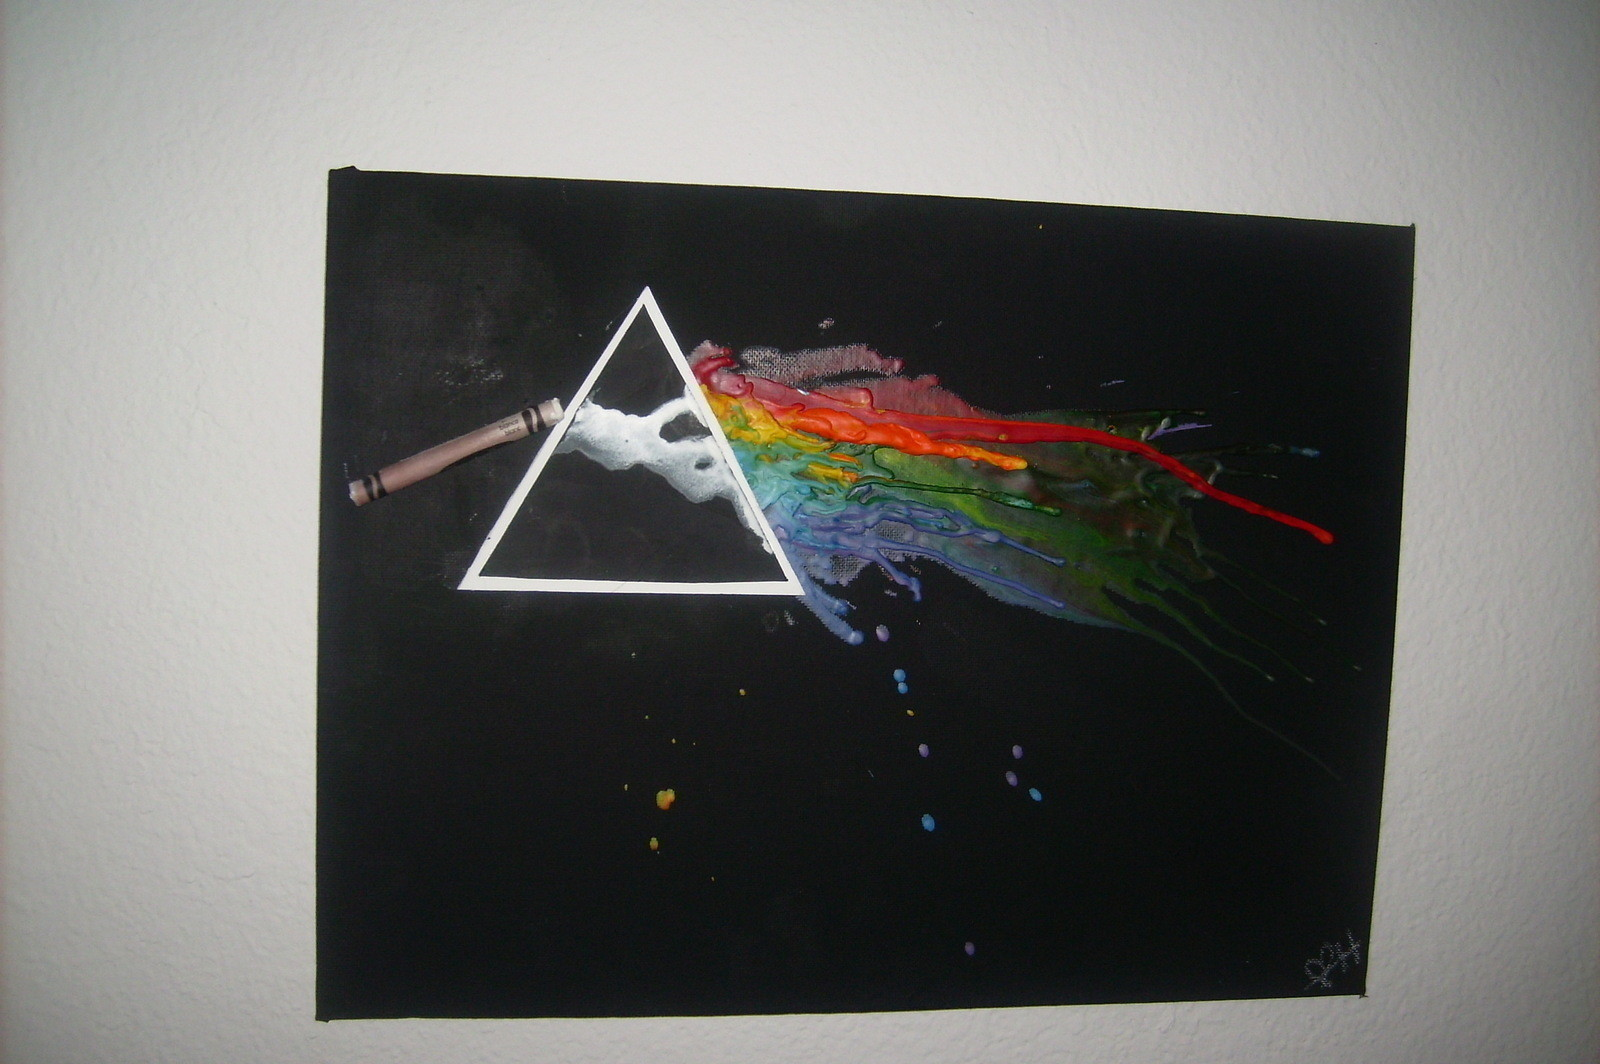 Pink Floyd Inspired Melted Crayon Art A Piece Of Melted Crayon Art Art Melting And